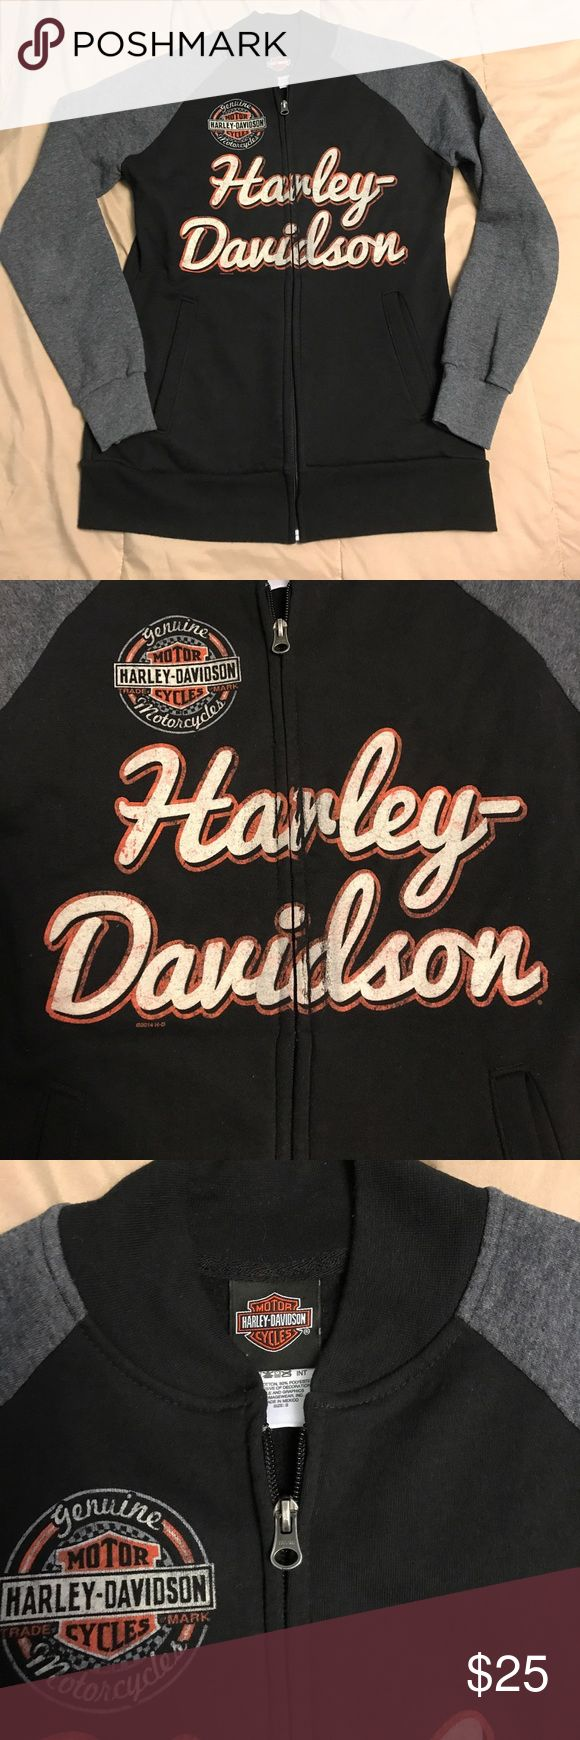 🏍 HARLEY DAVIDSON ZIP-UP SIZE S WOMENS SWEATSHIRT Harley-Davidson Women's size small zip-up sweatshirt! Nice thick cotton material, vintage writing on both front and back, original Harley orange! Super comfy! Goes great with everything! Will keep you nice and warm on a chilly ride or cozy and comfortable just lounging around! Harley-Davidson Jackets & Coats